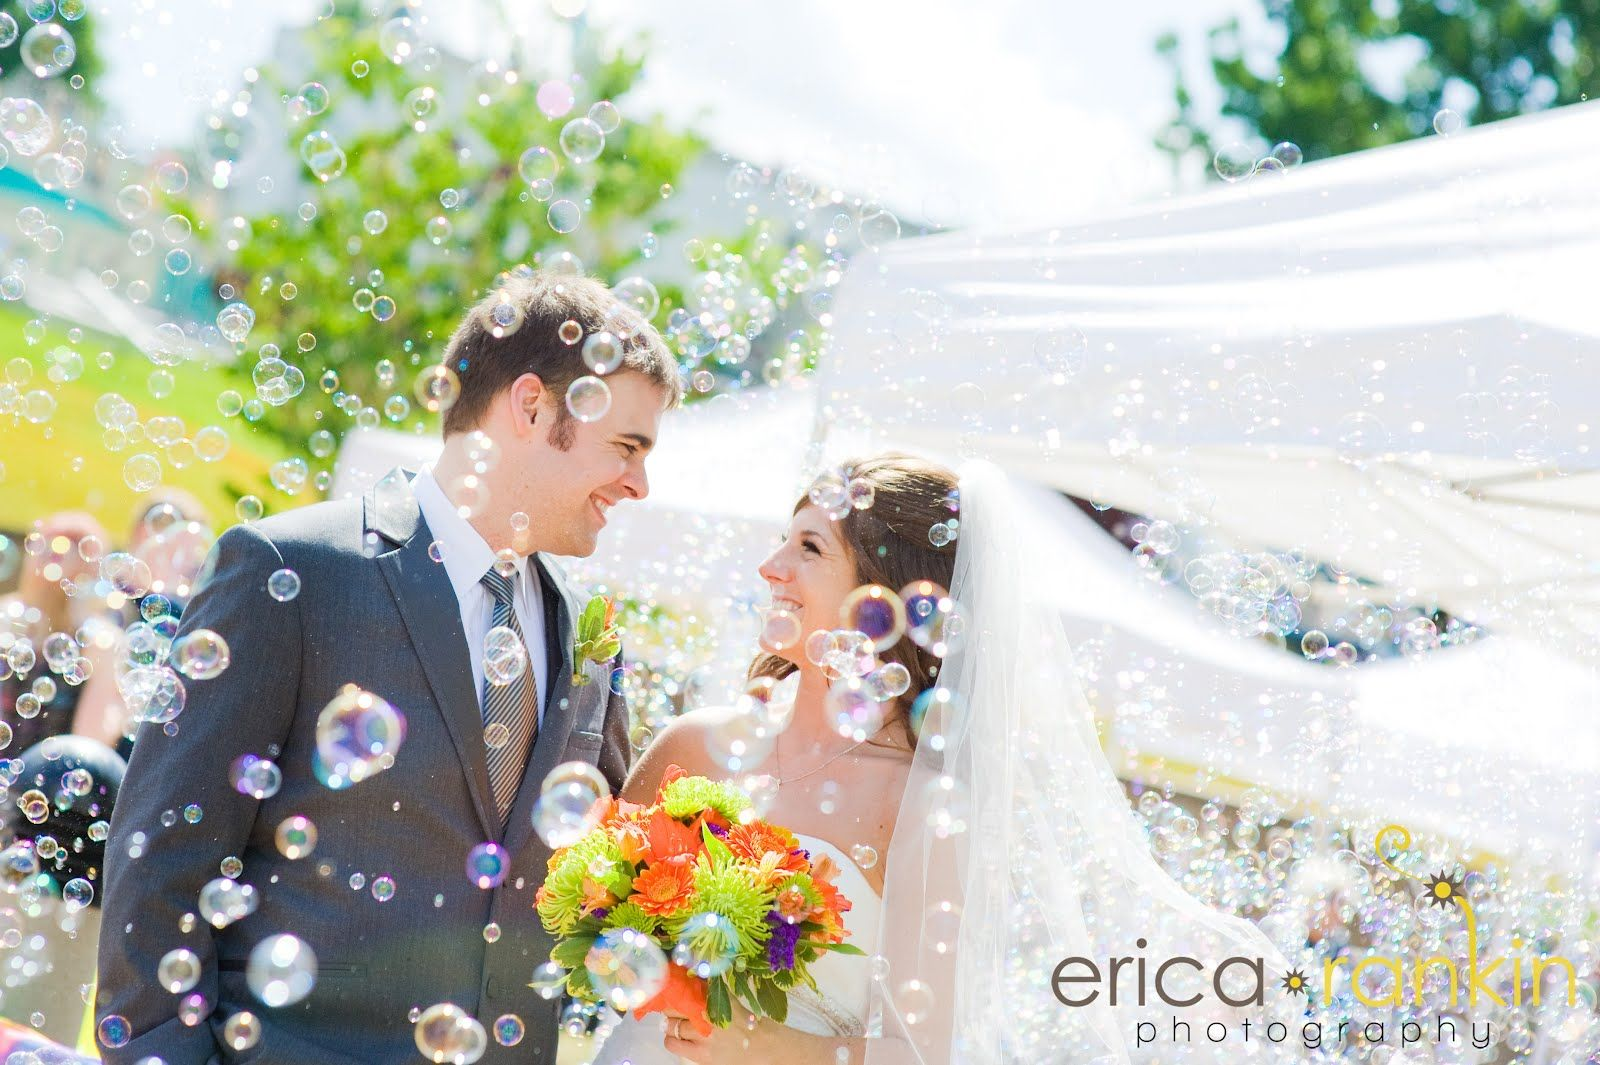 Erica rankin photography icarankin wedding casamento